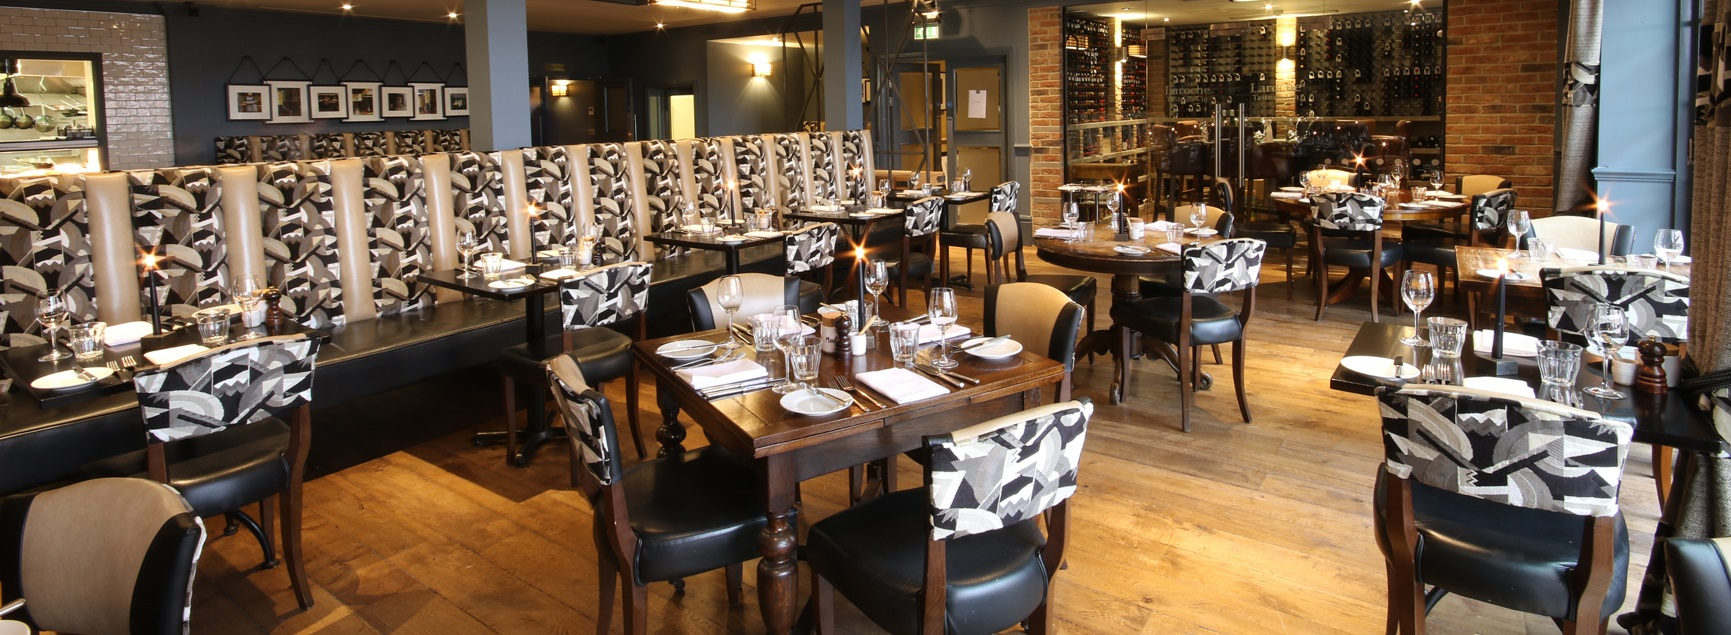 Hotel du Vin Newcastle Unveils Contemporary New Bistro Inspired by its Maritime Roots